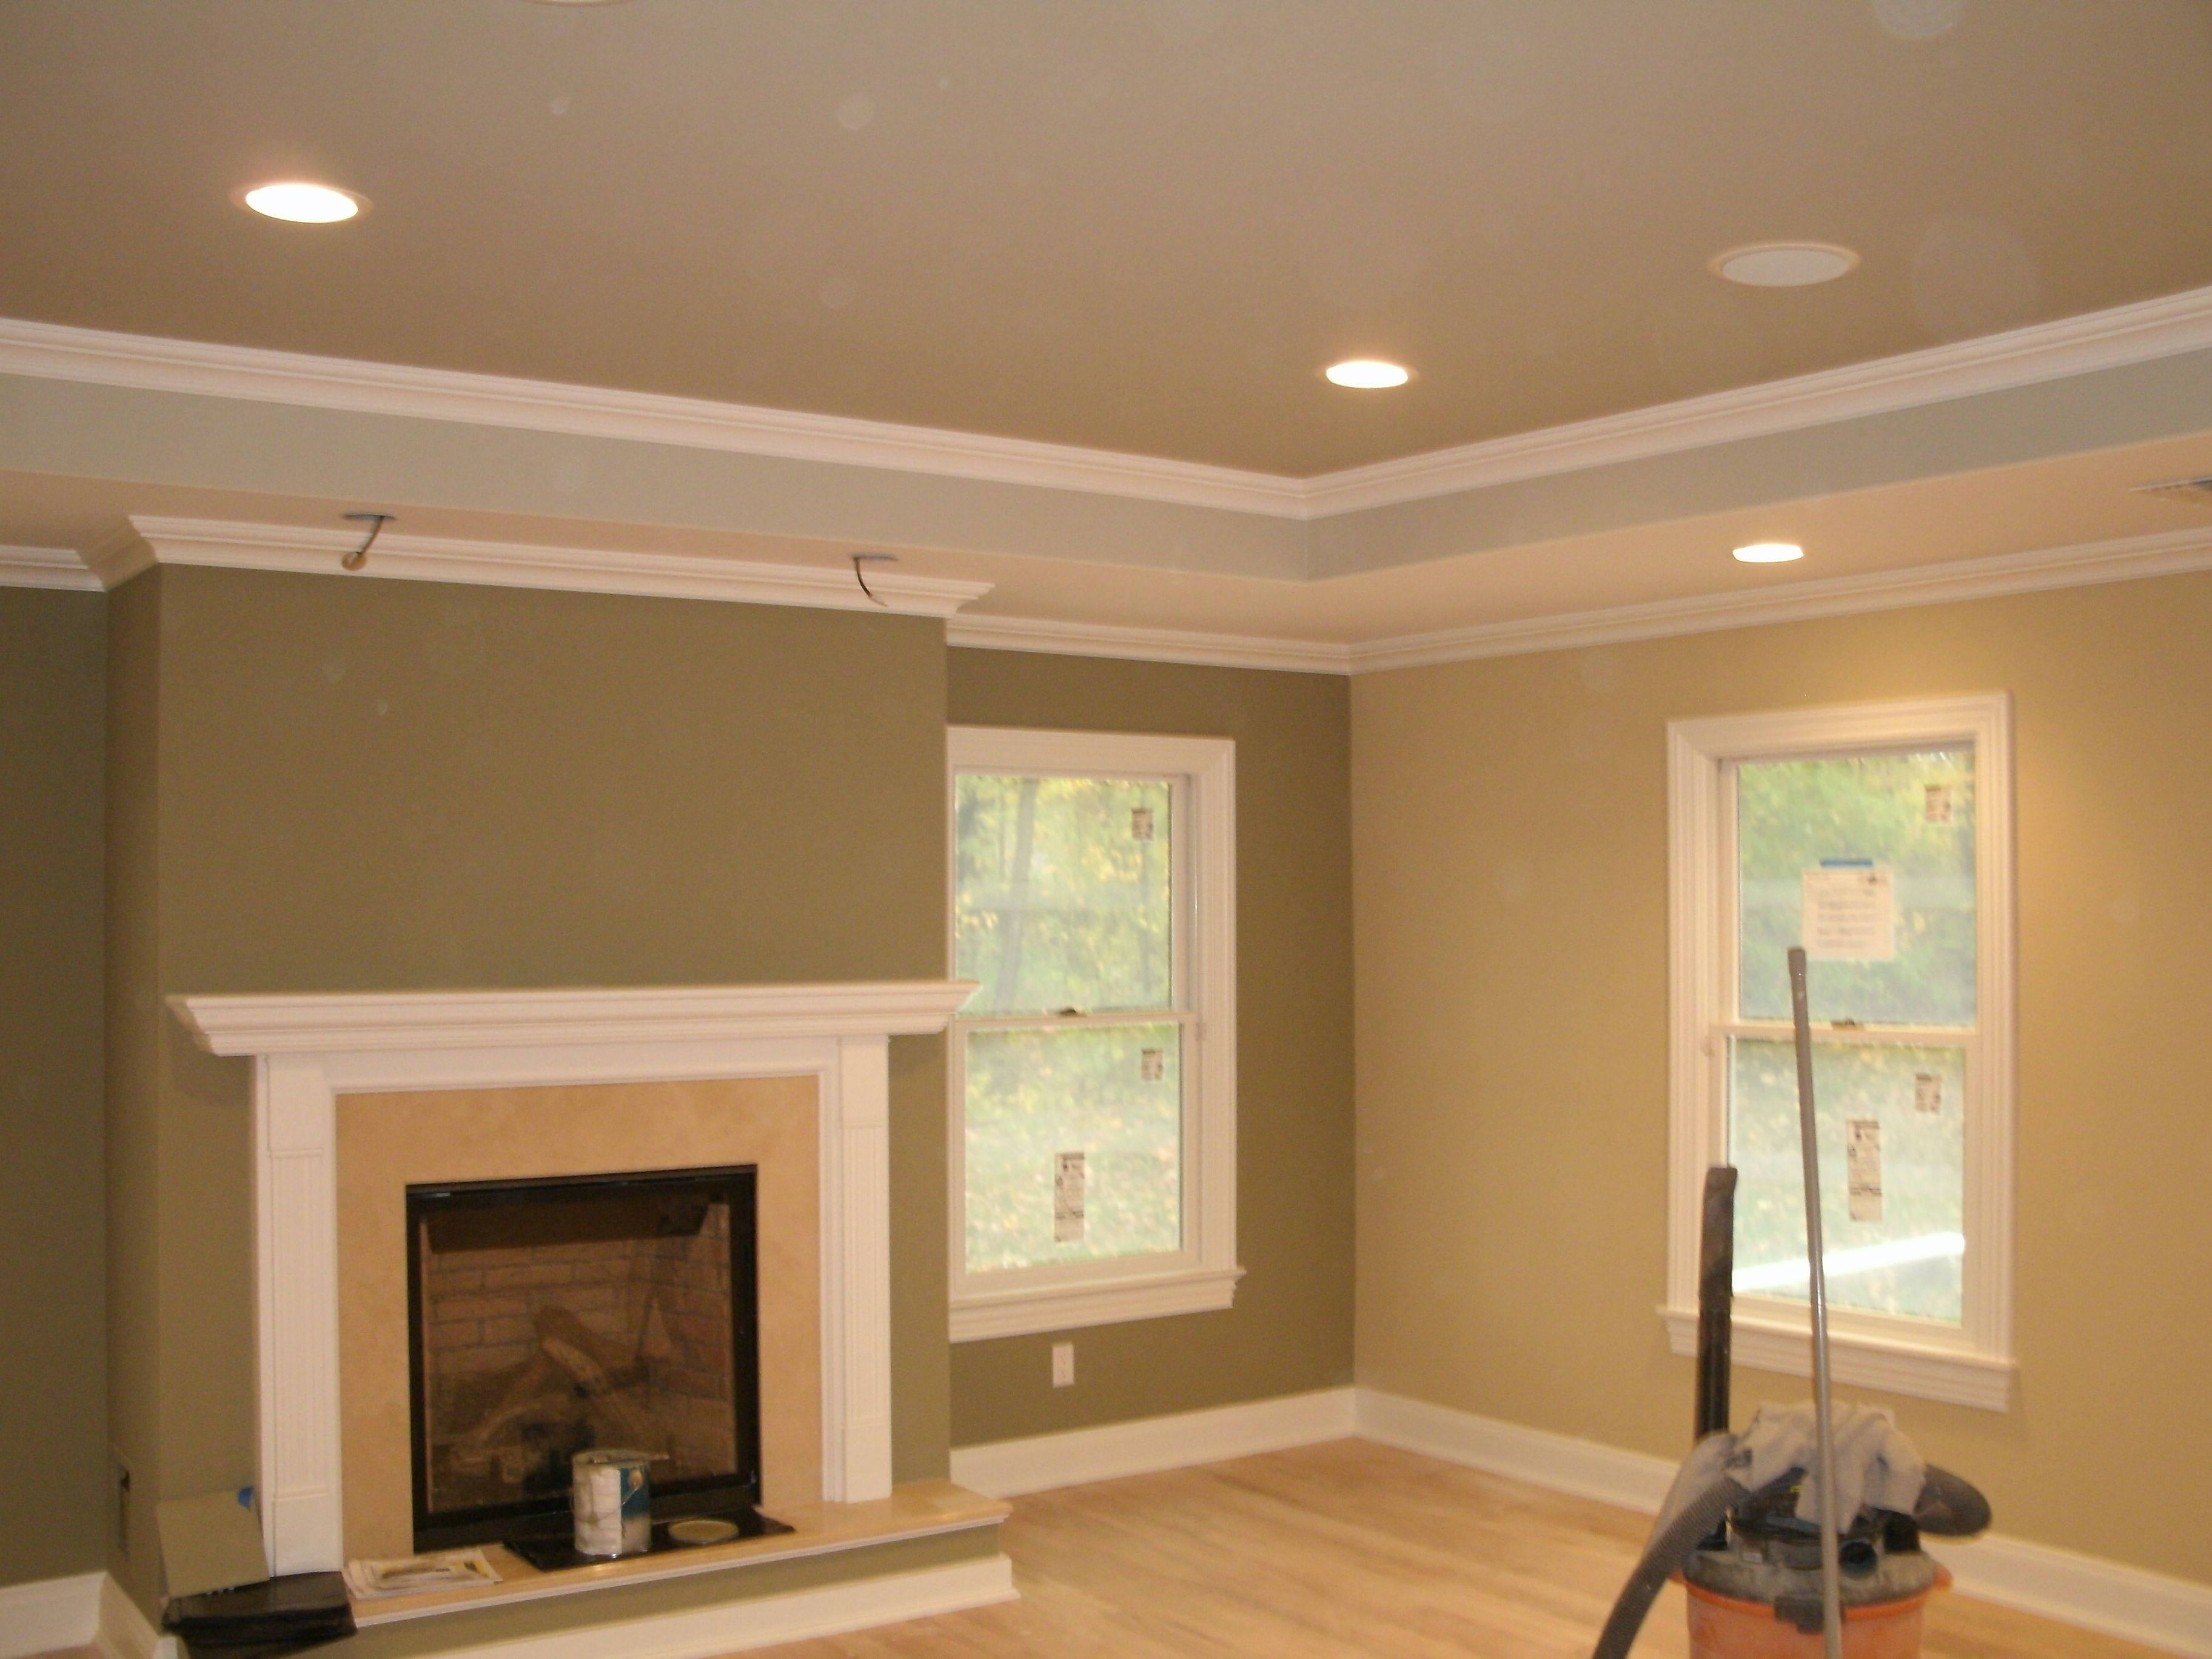 Interior painting molding finishes creative finishes - Best paint finish for living room ...